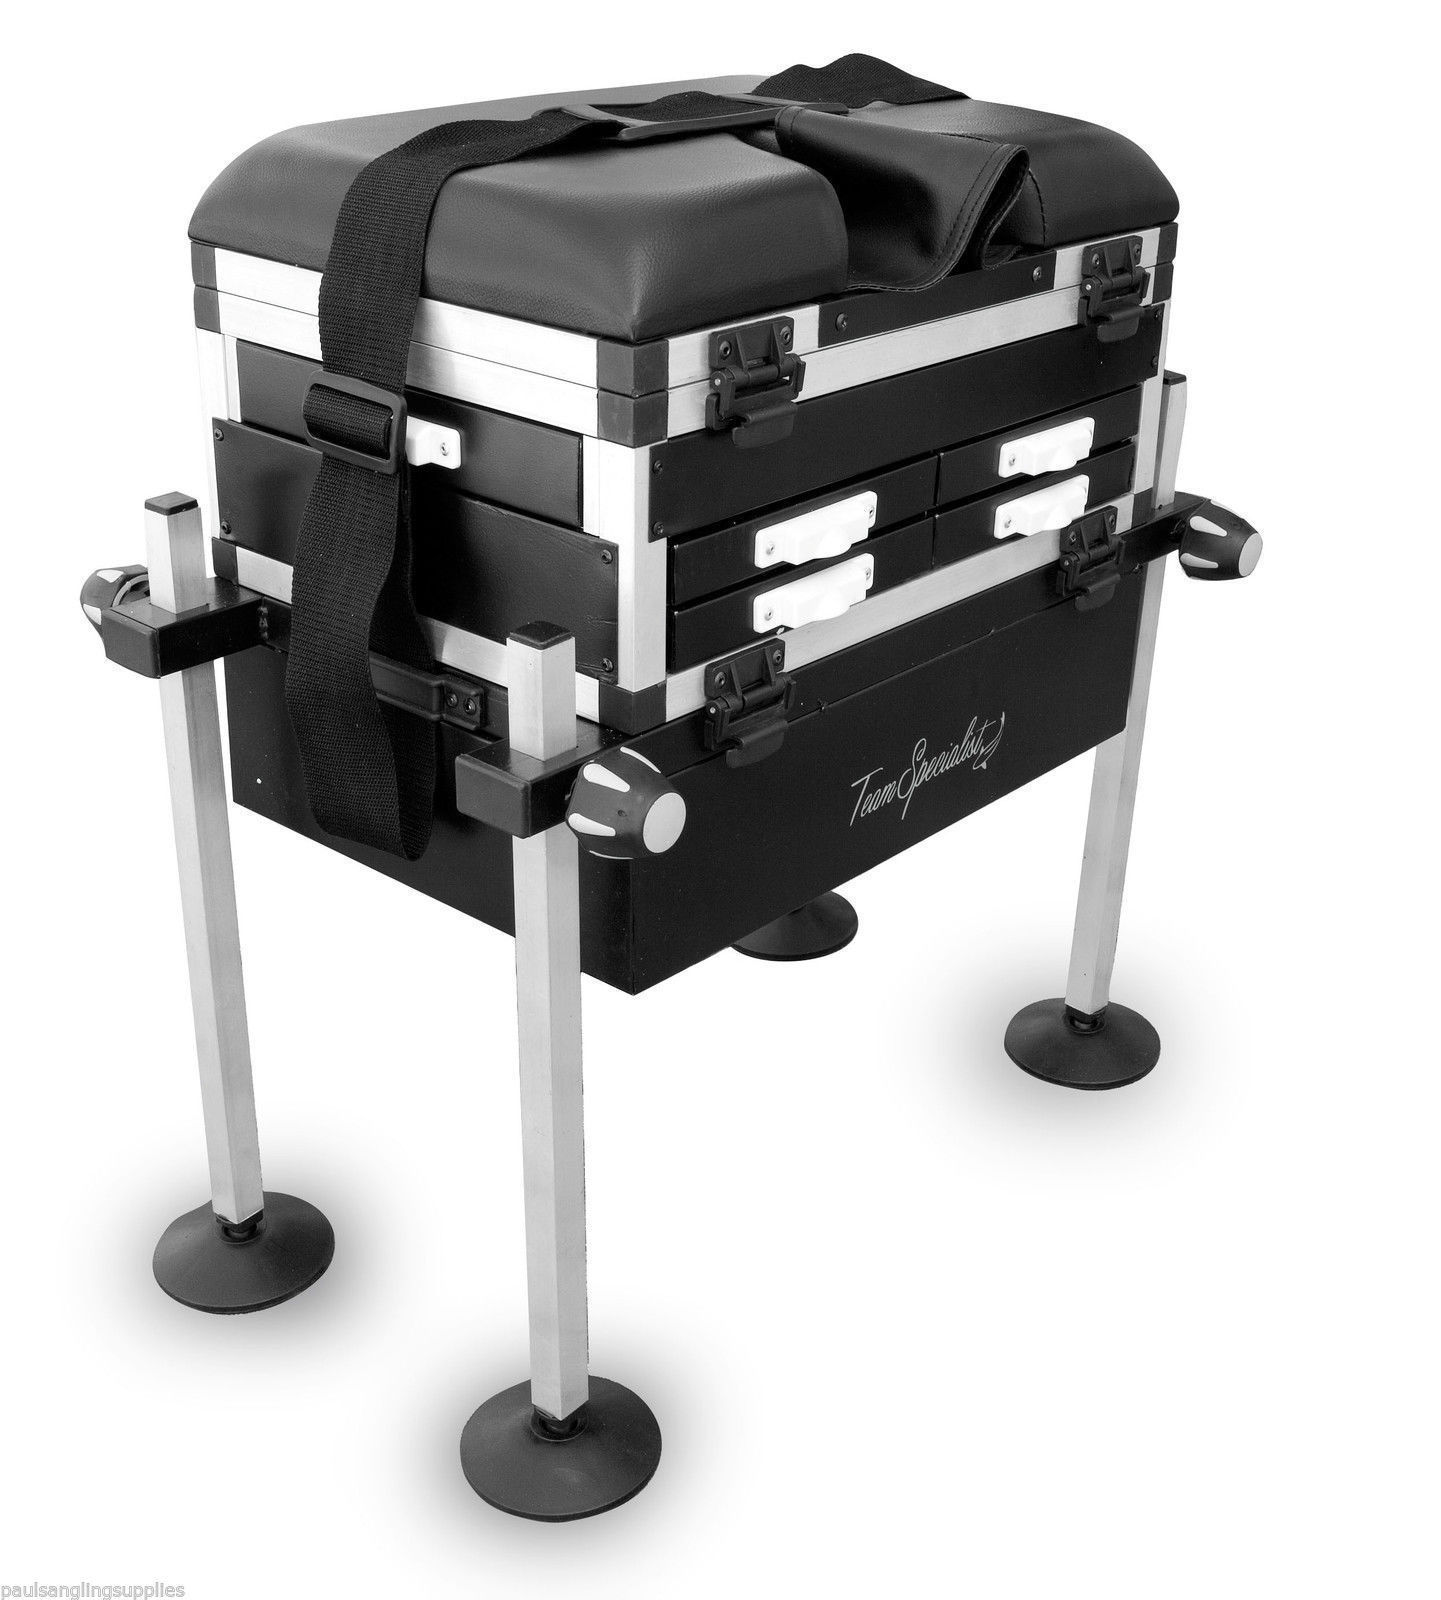 ngt fishing chair harley davidson chairs max 5 drawer seat box seatbox with strap